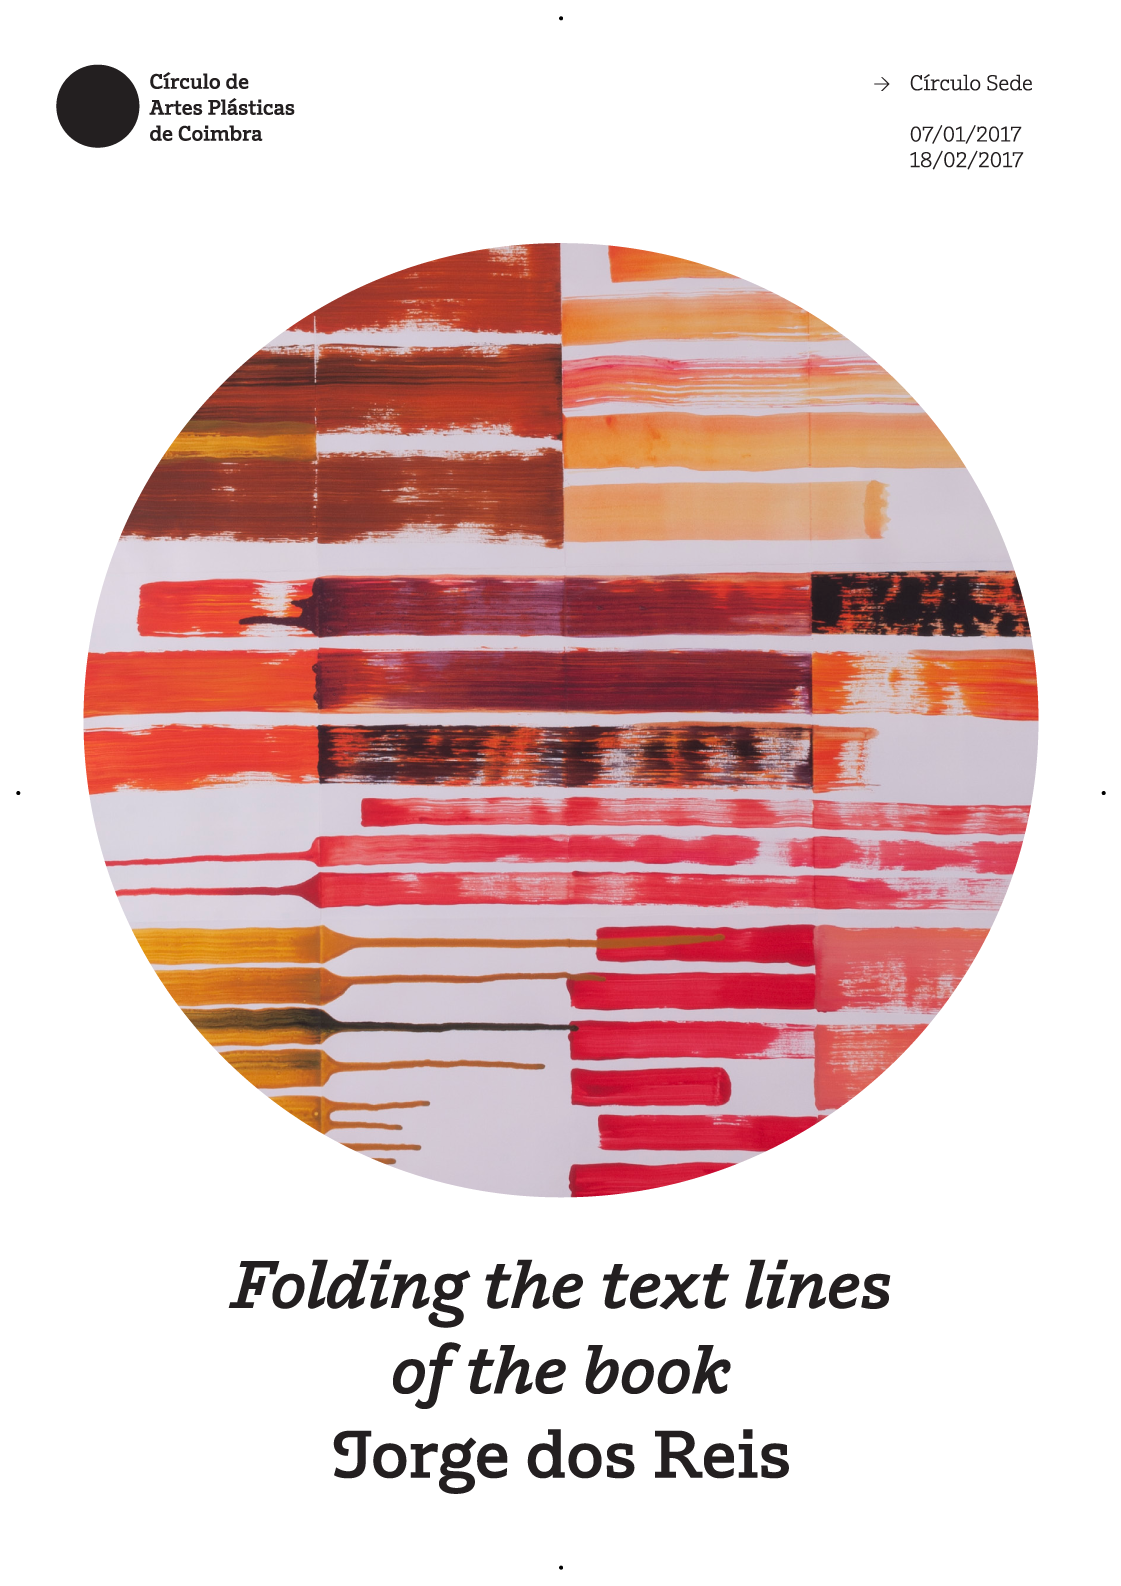 folding-the-text-lines-of-the-book-cartaz